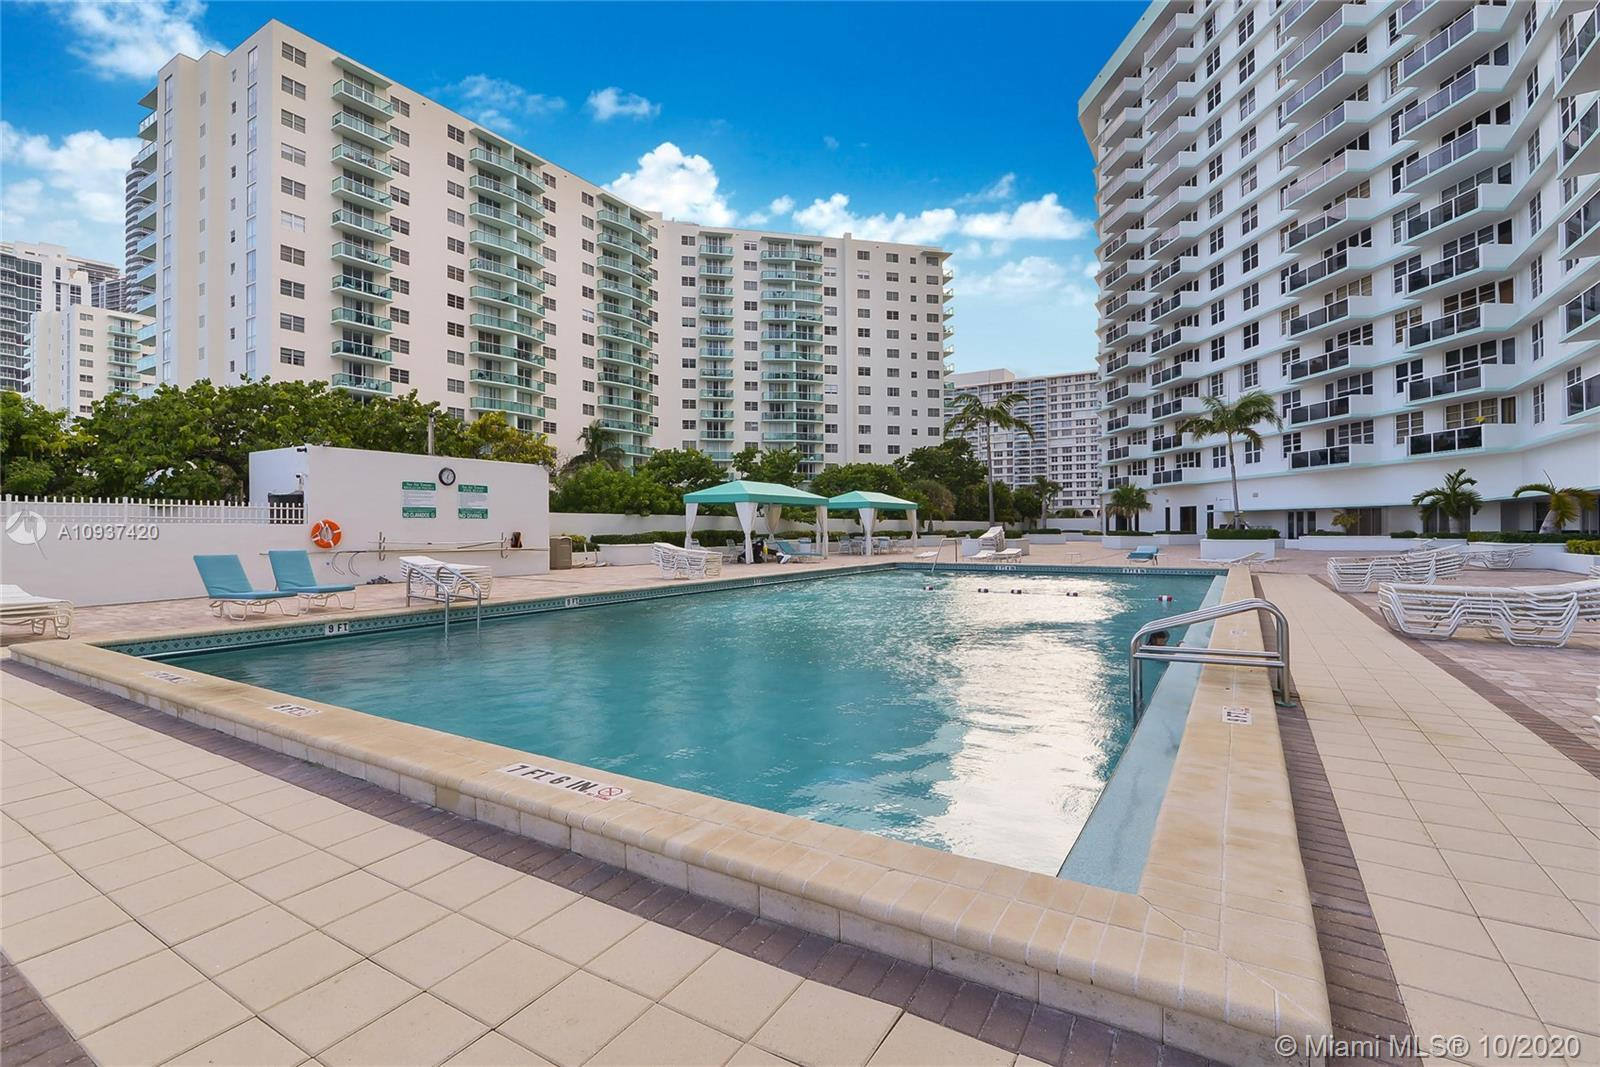 GORGEOUS CONDO TASTEFULLY REMODELED , WHITE KITCHEN CABINETS WITH STAINLESS STEEL APPLIANCES, BEUTIF